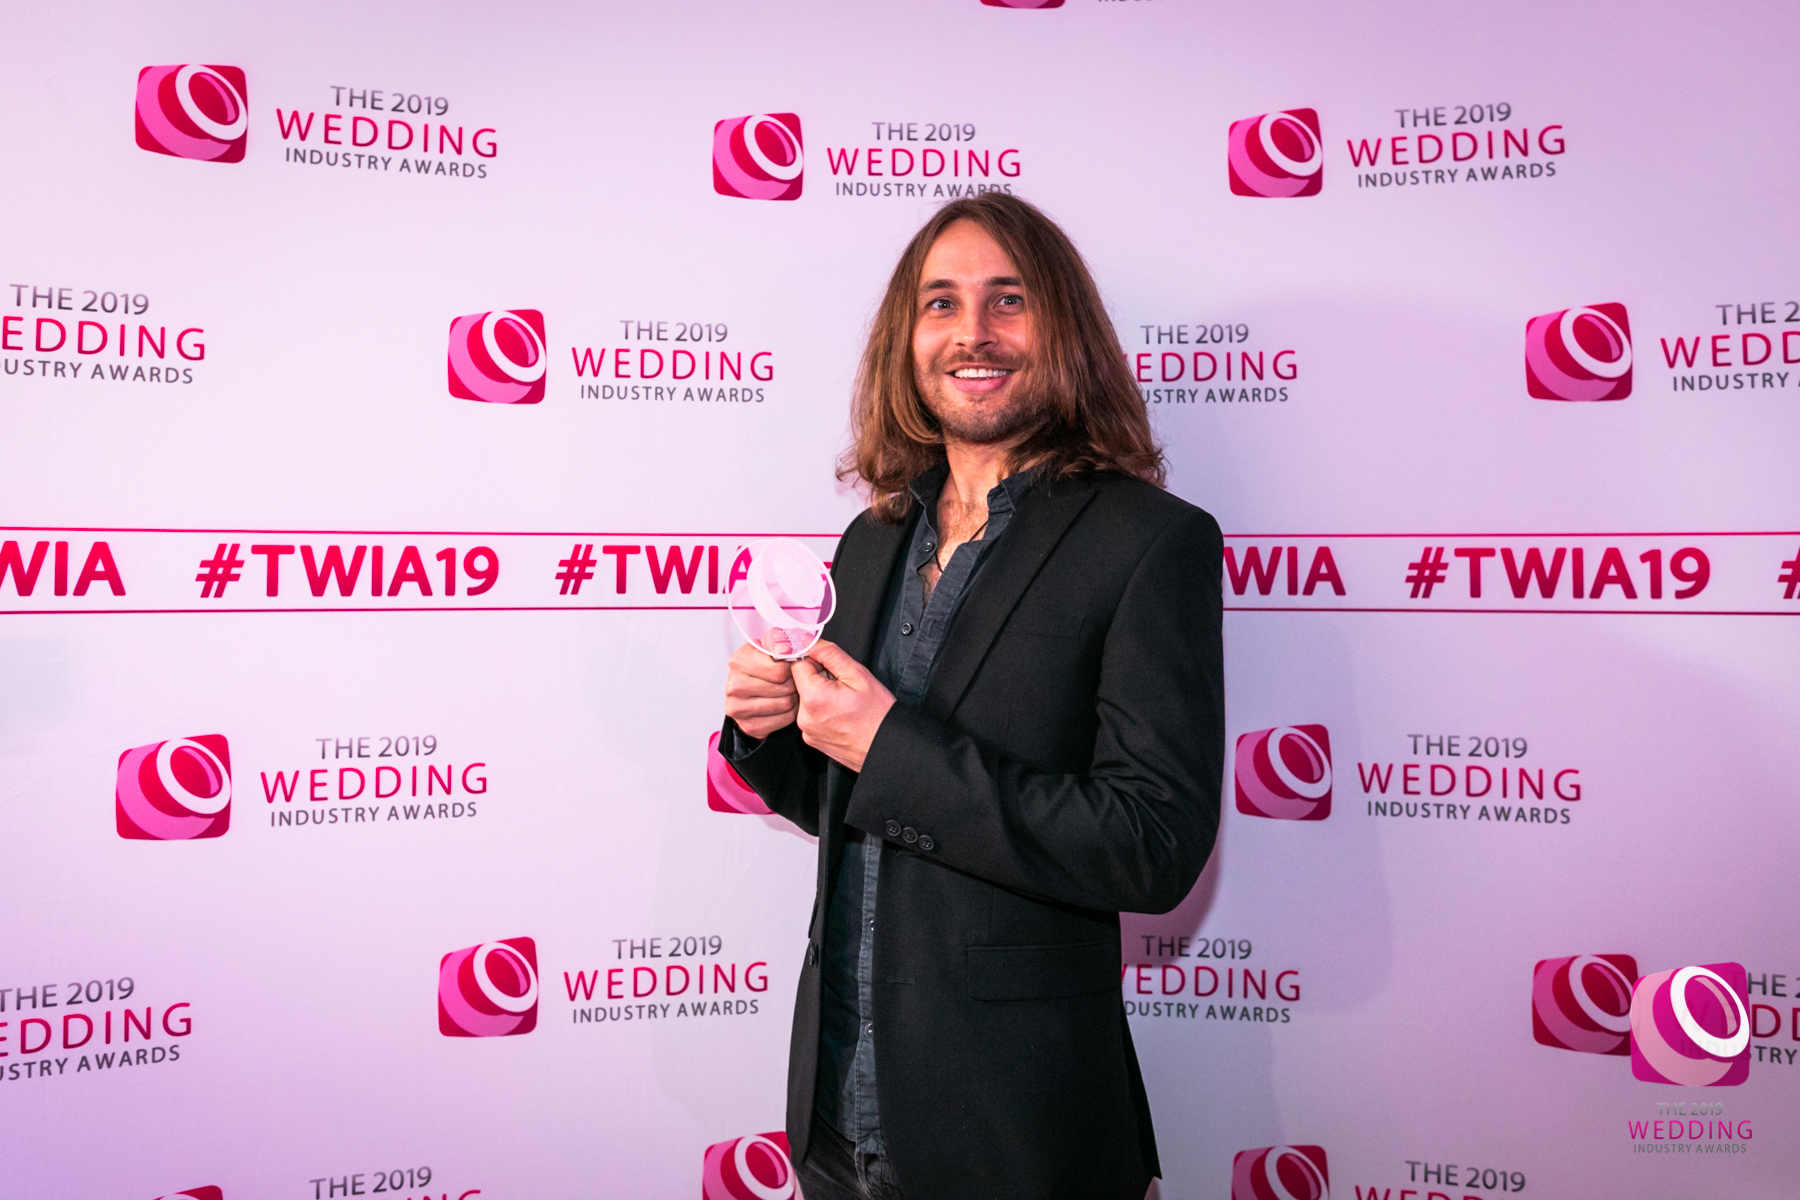 At The Wedding Industry Awards 2019